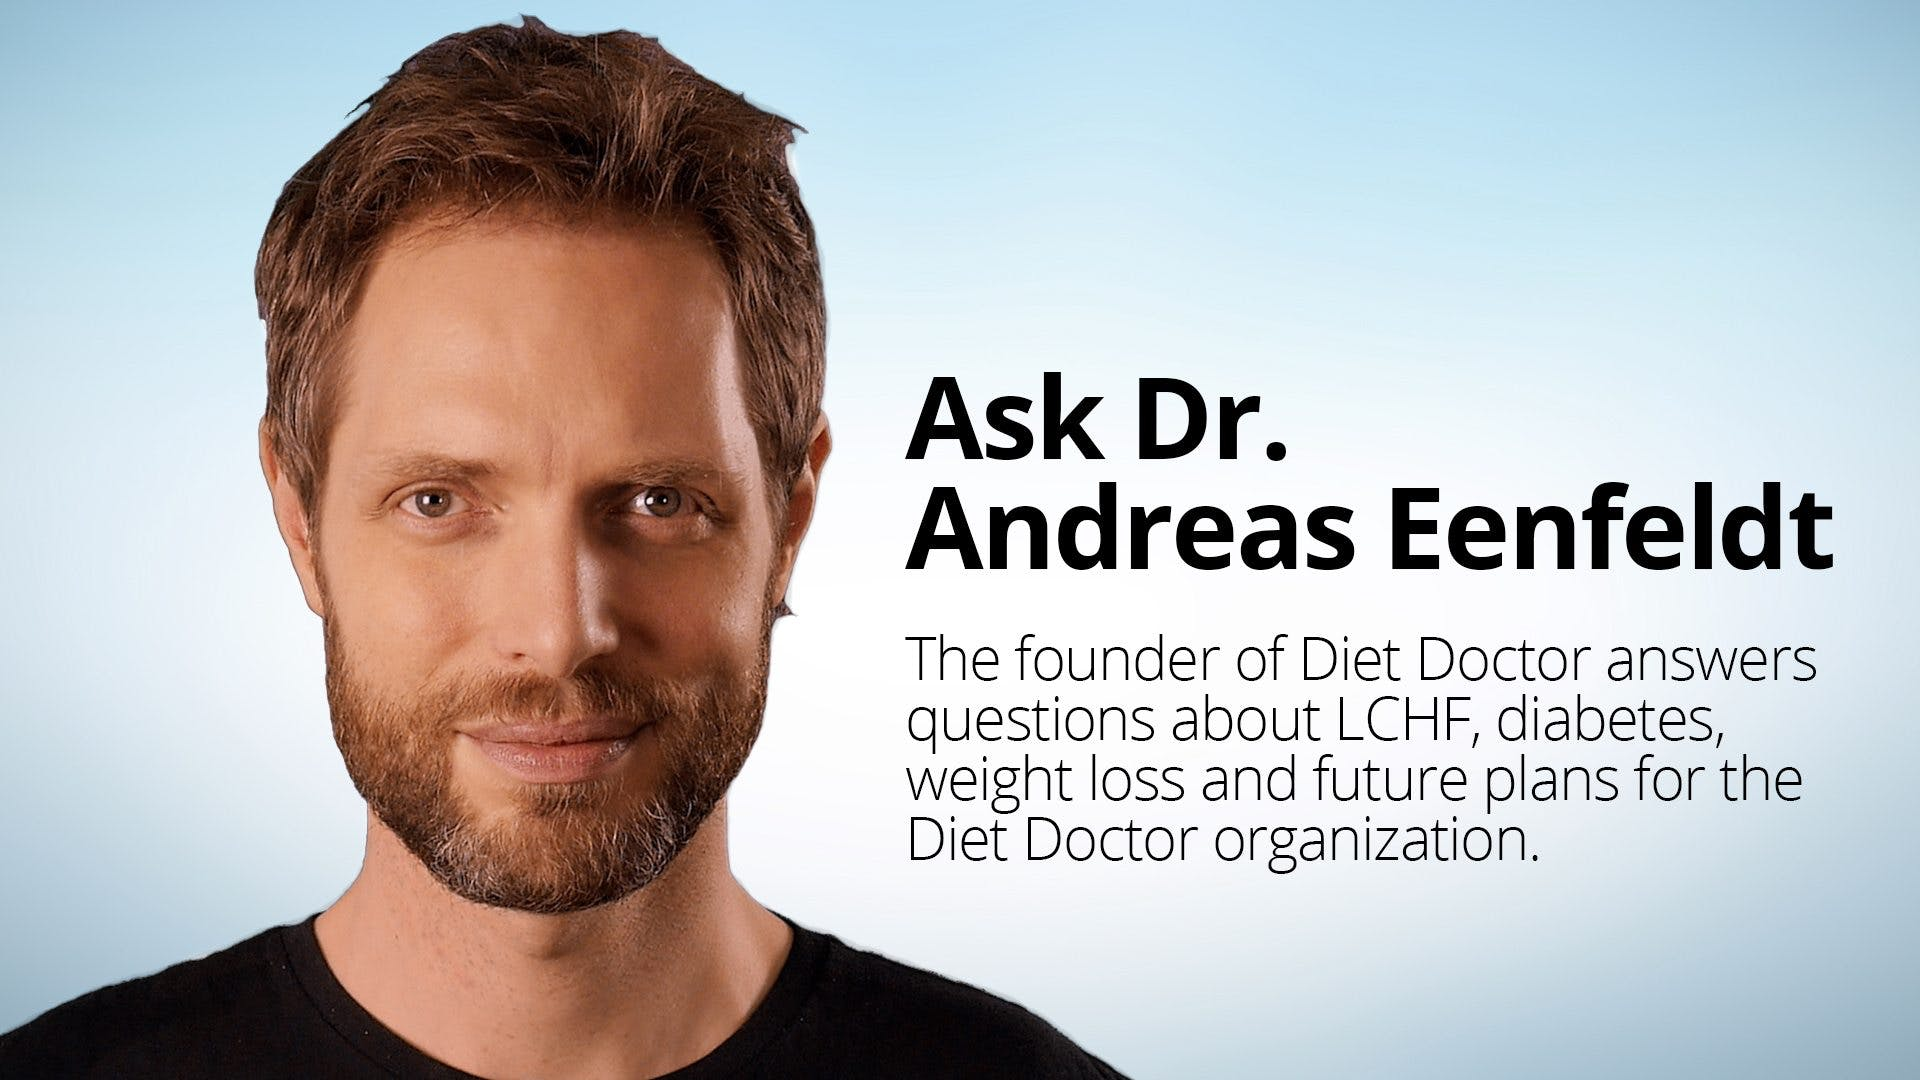 Ask Dr. Andreas Eenfeldt